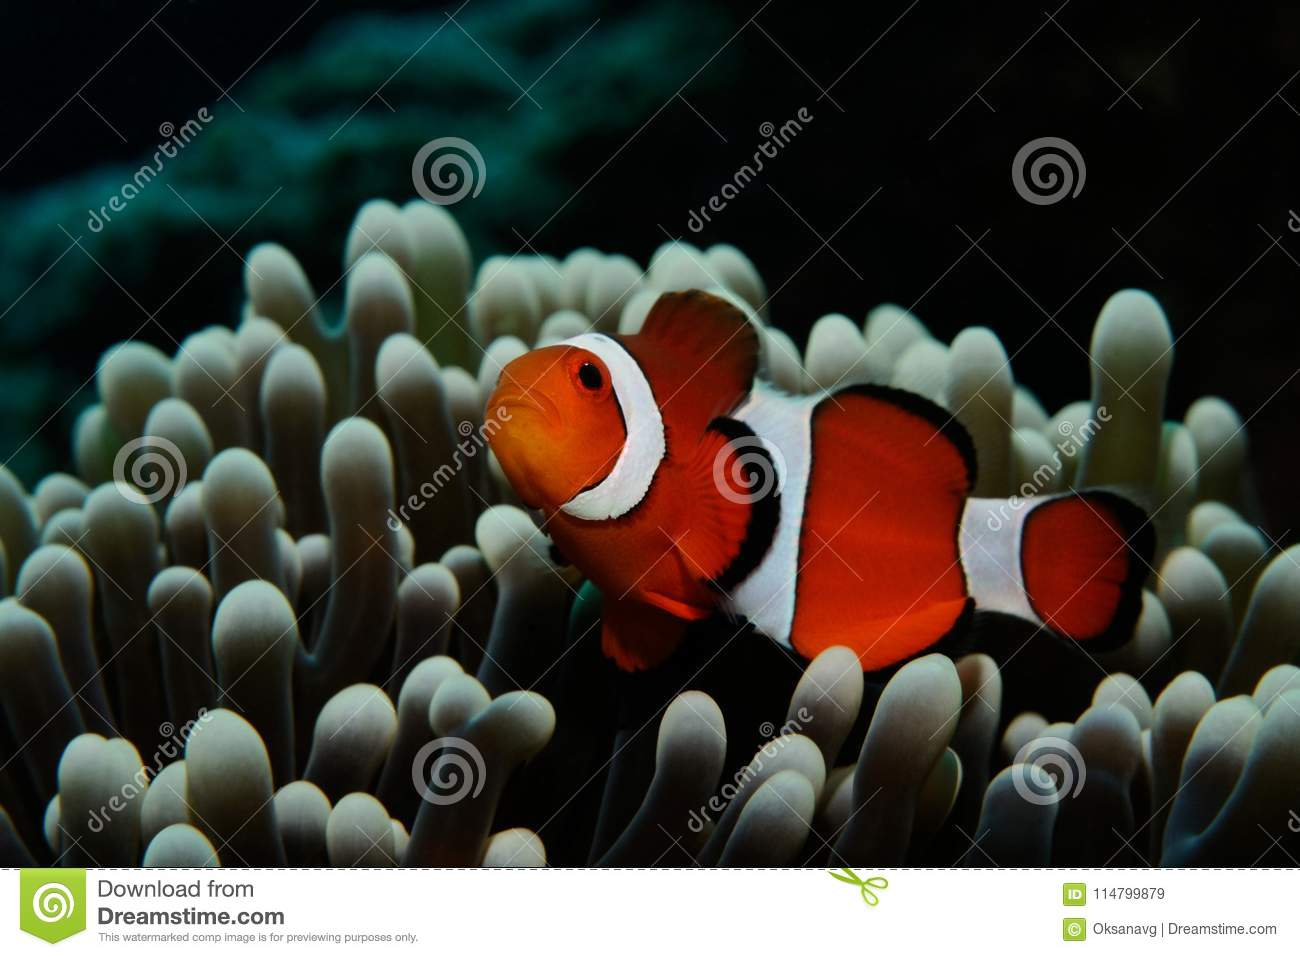 Nemo in grey anemone stock image. Image of clownfish - 114799879